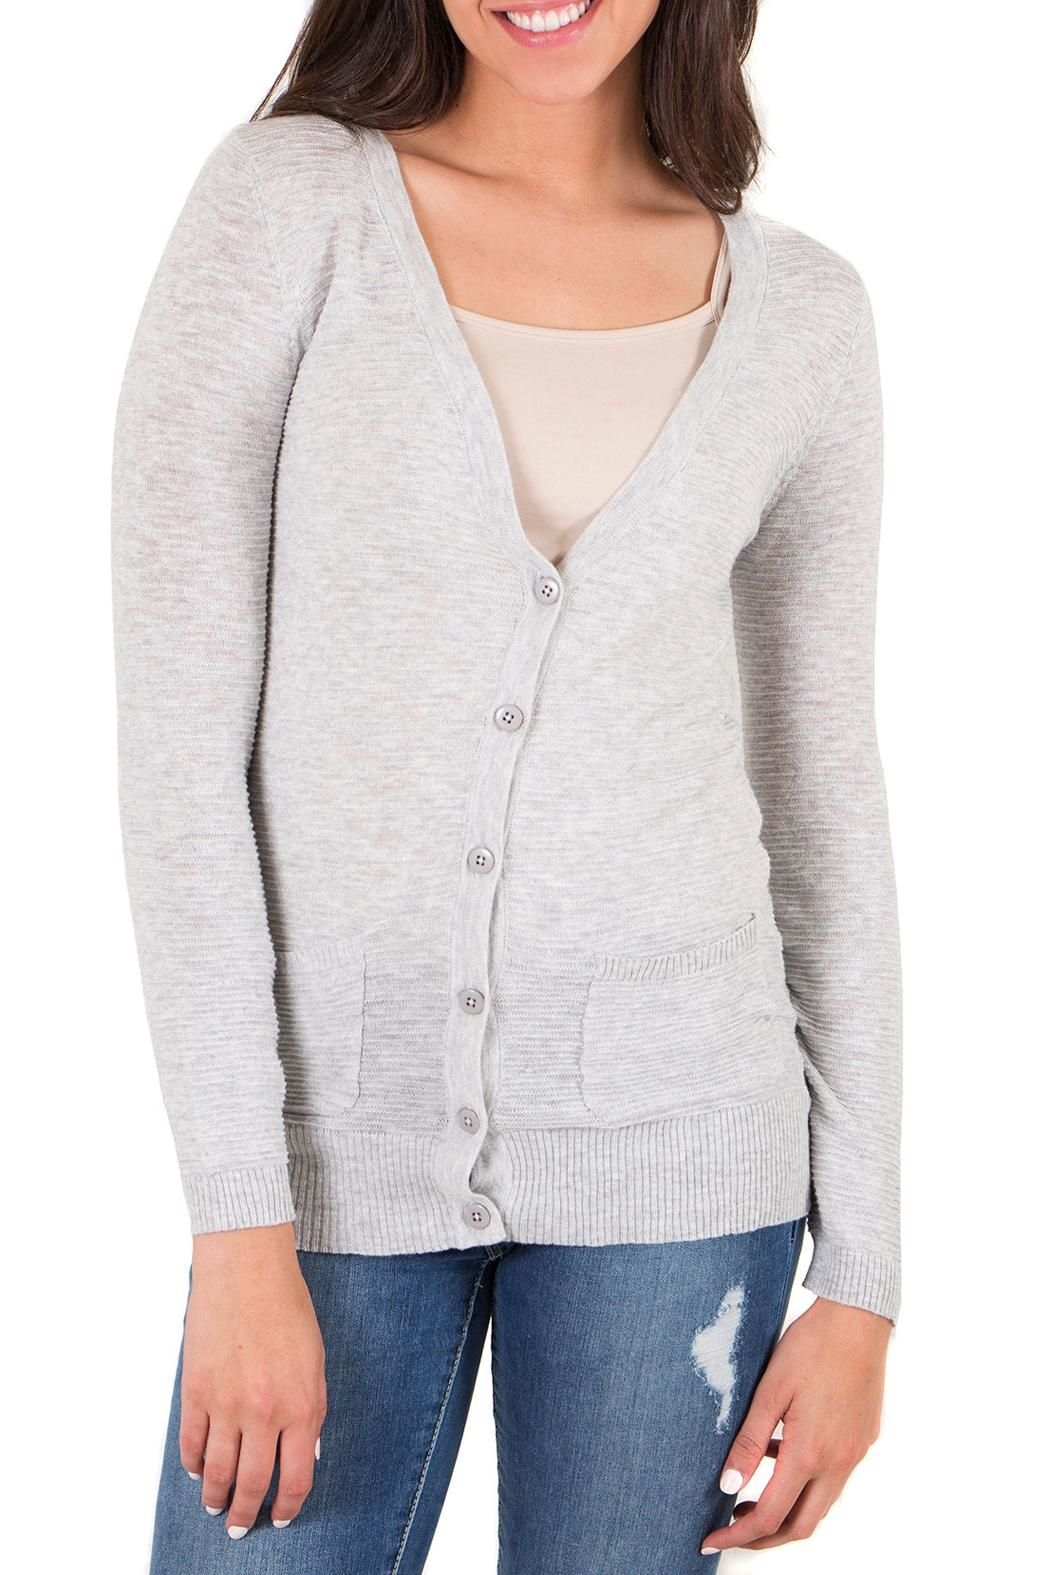 Downeast Basics Stowaway Cardigan - Front Cropped Image